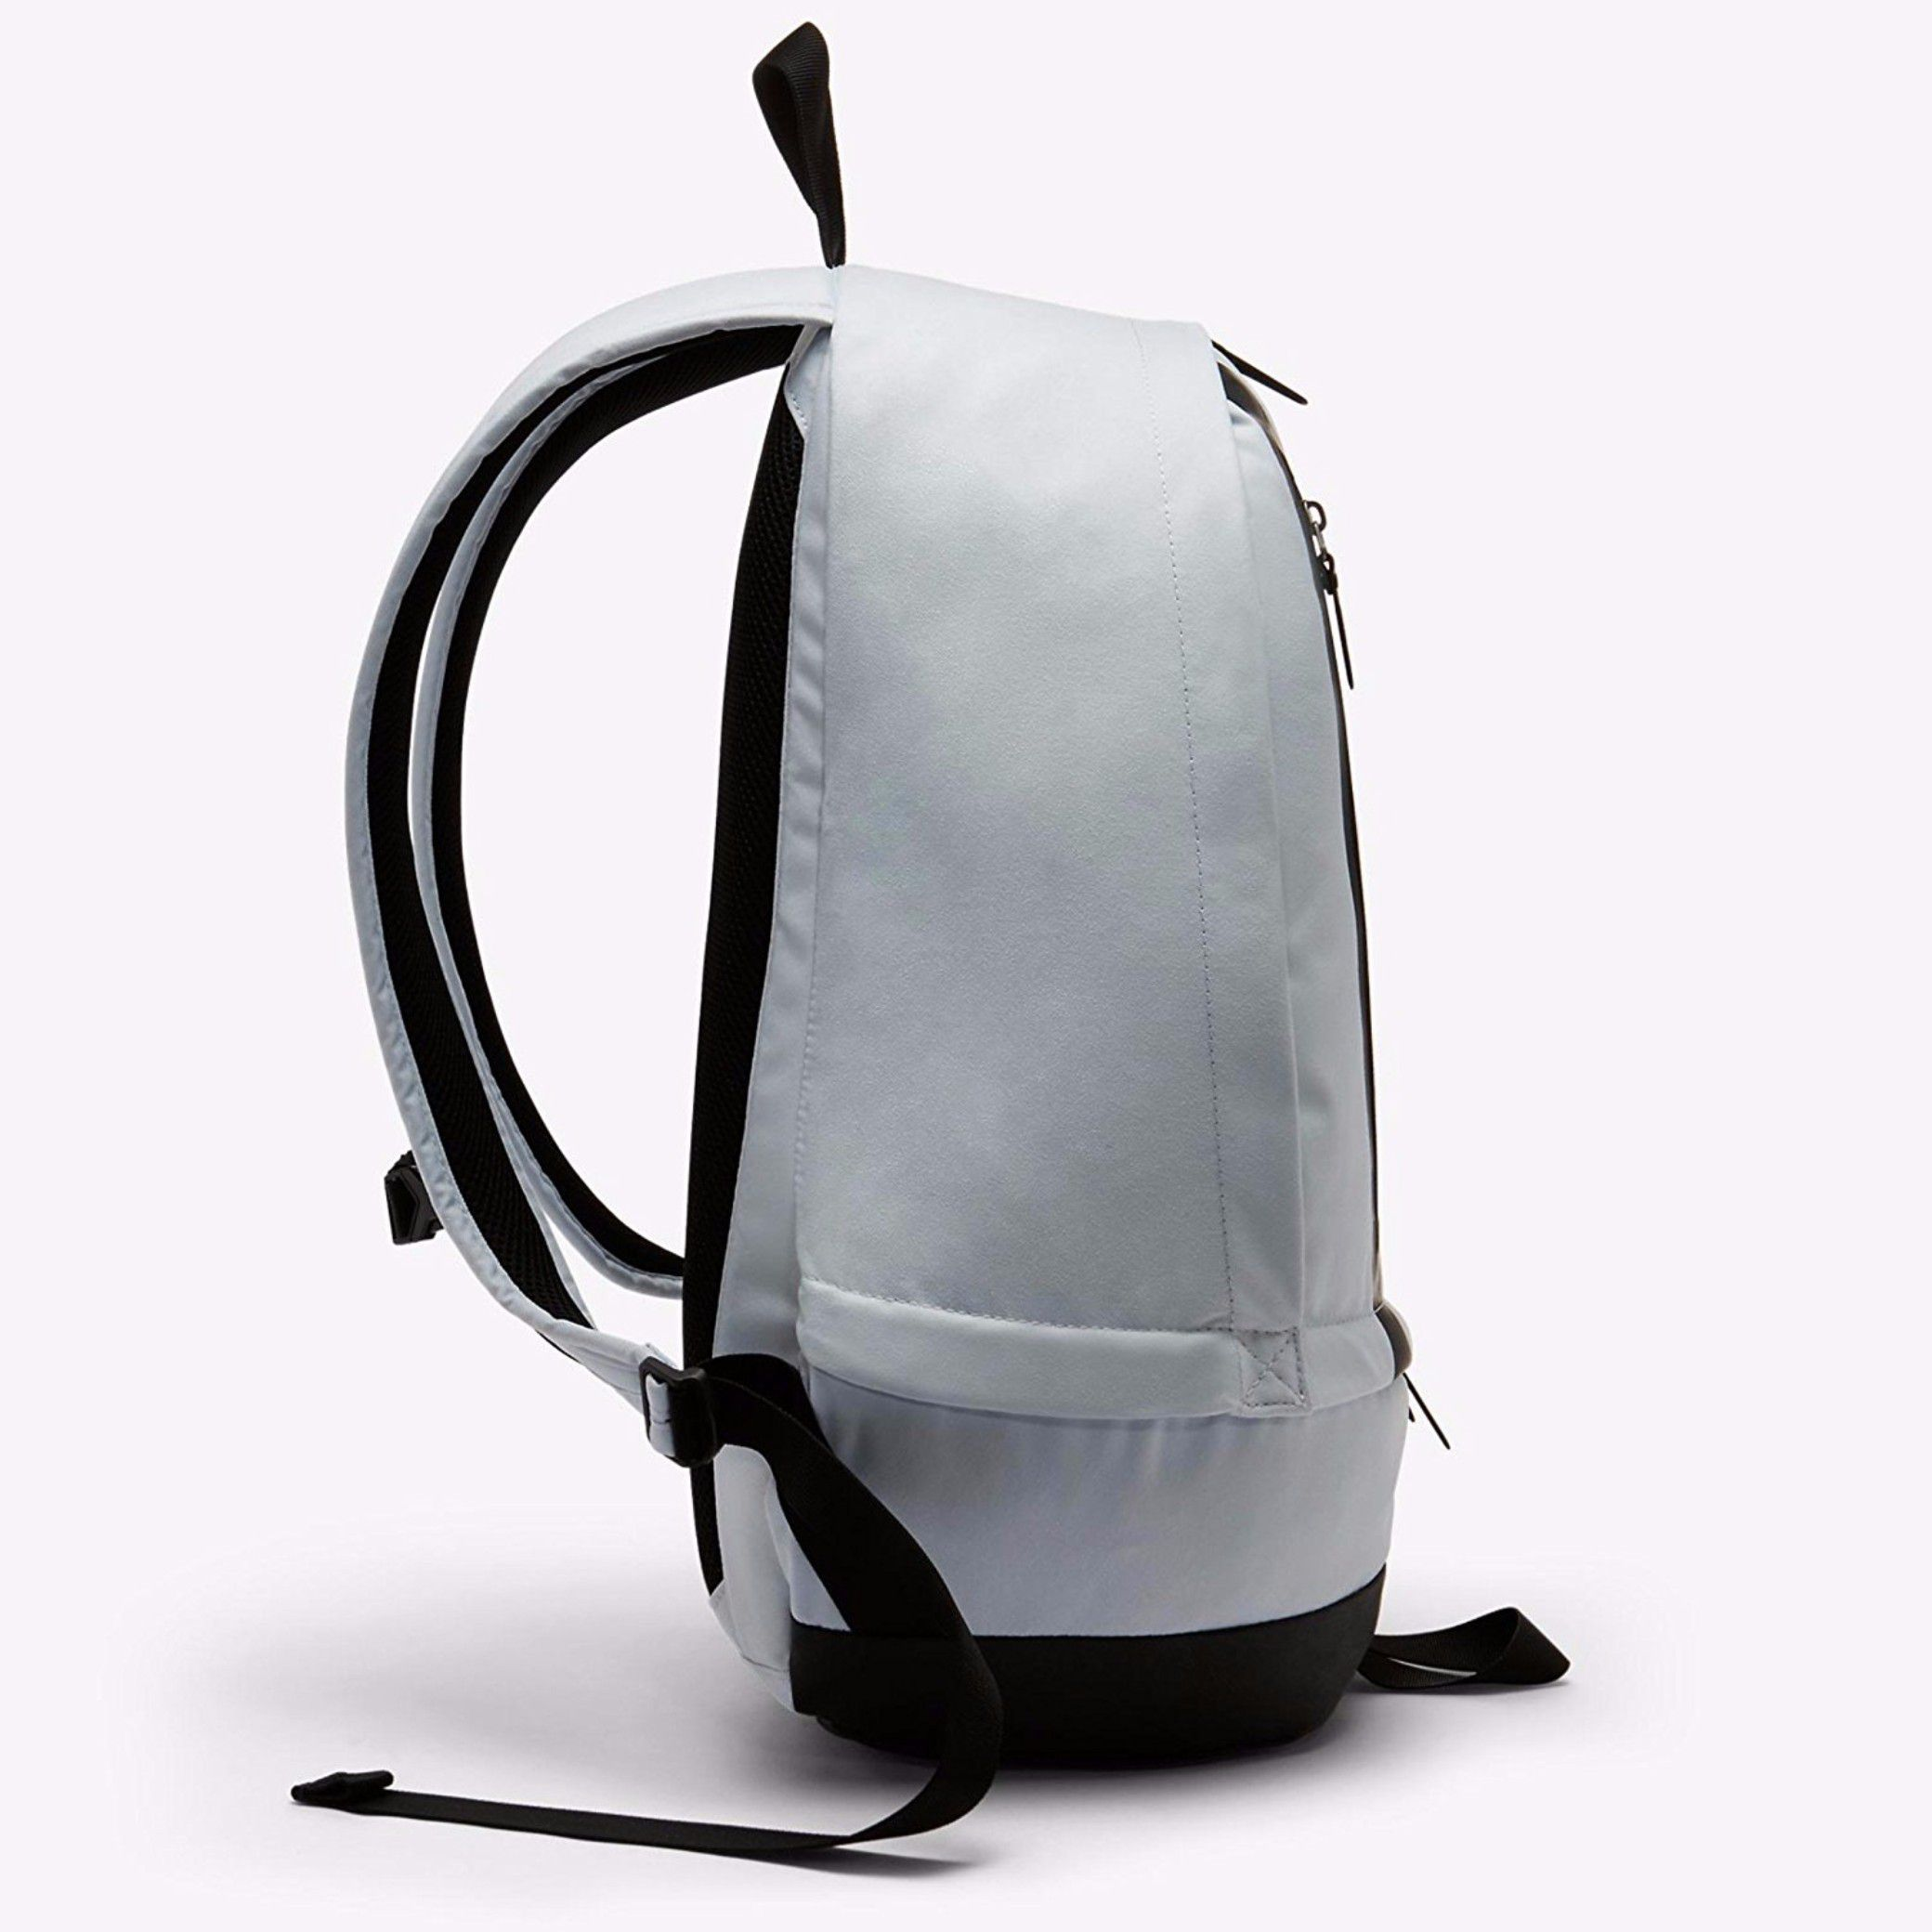 Nike Off white CR7 Backpack - Buy Nike Off white CR7 Backpack Online ... f3709a89bc95d